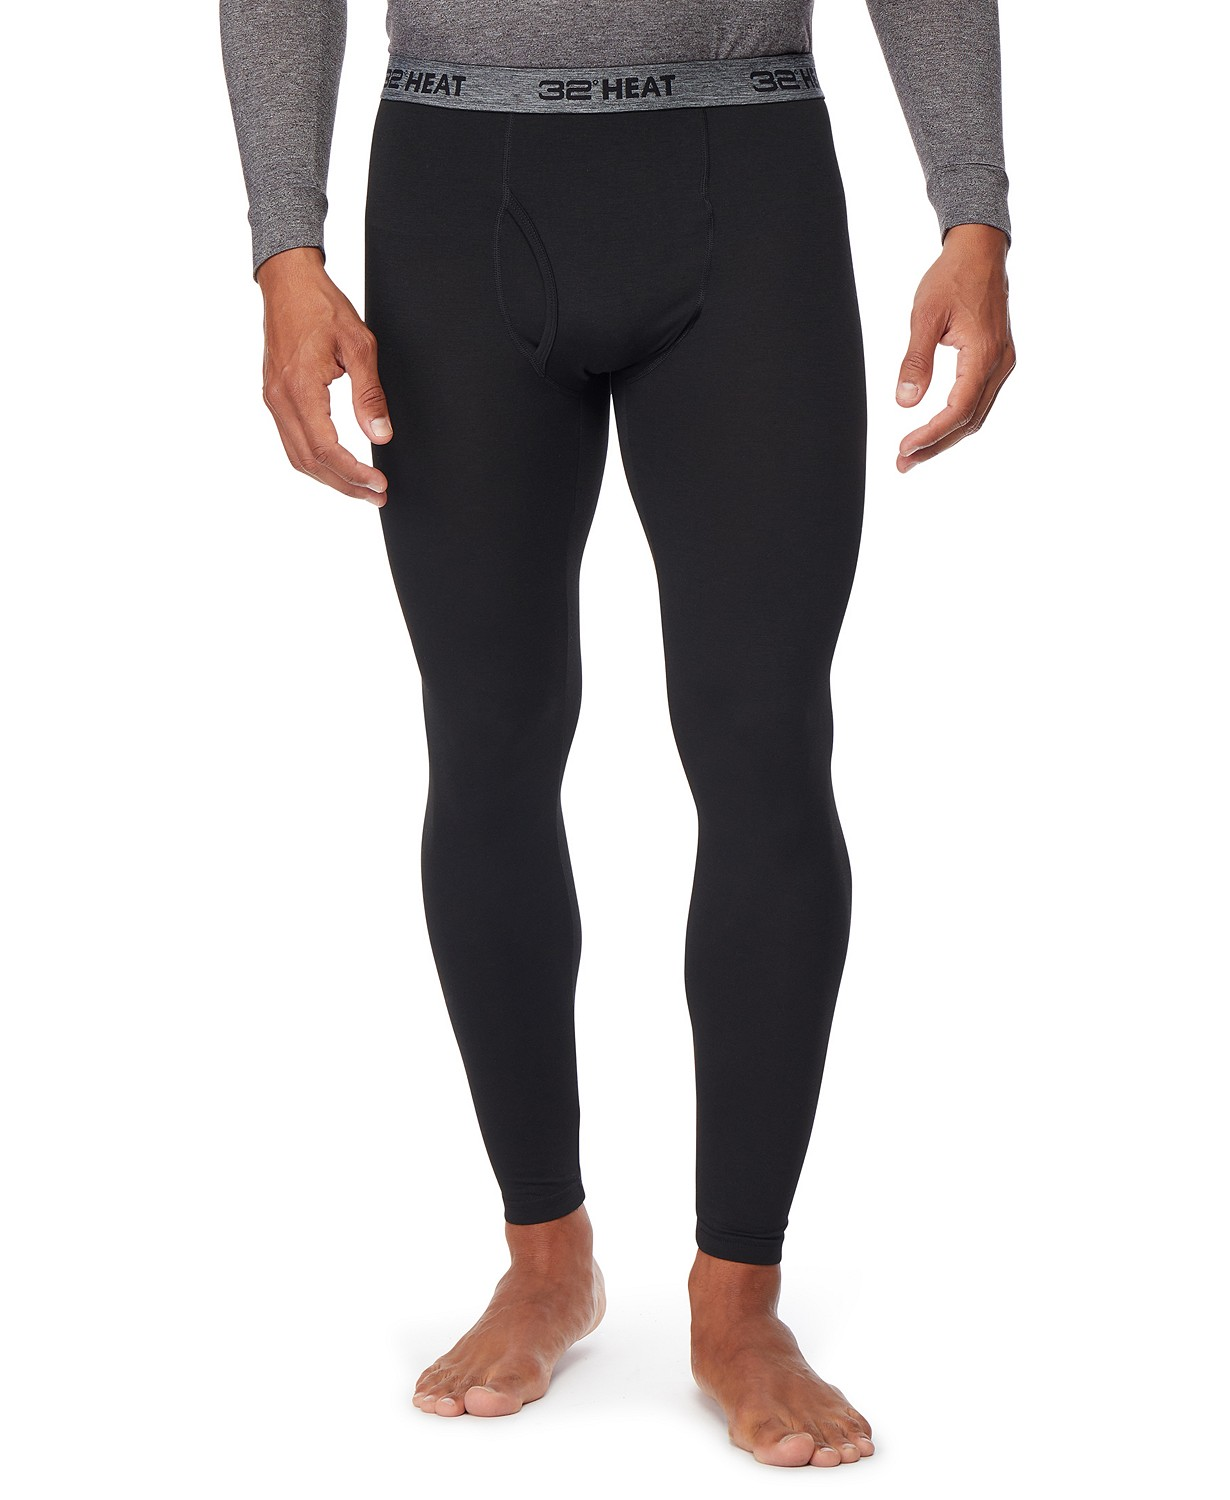 Macy's: Men's Heat Plus Leggings $6.99